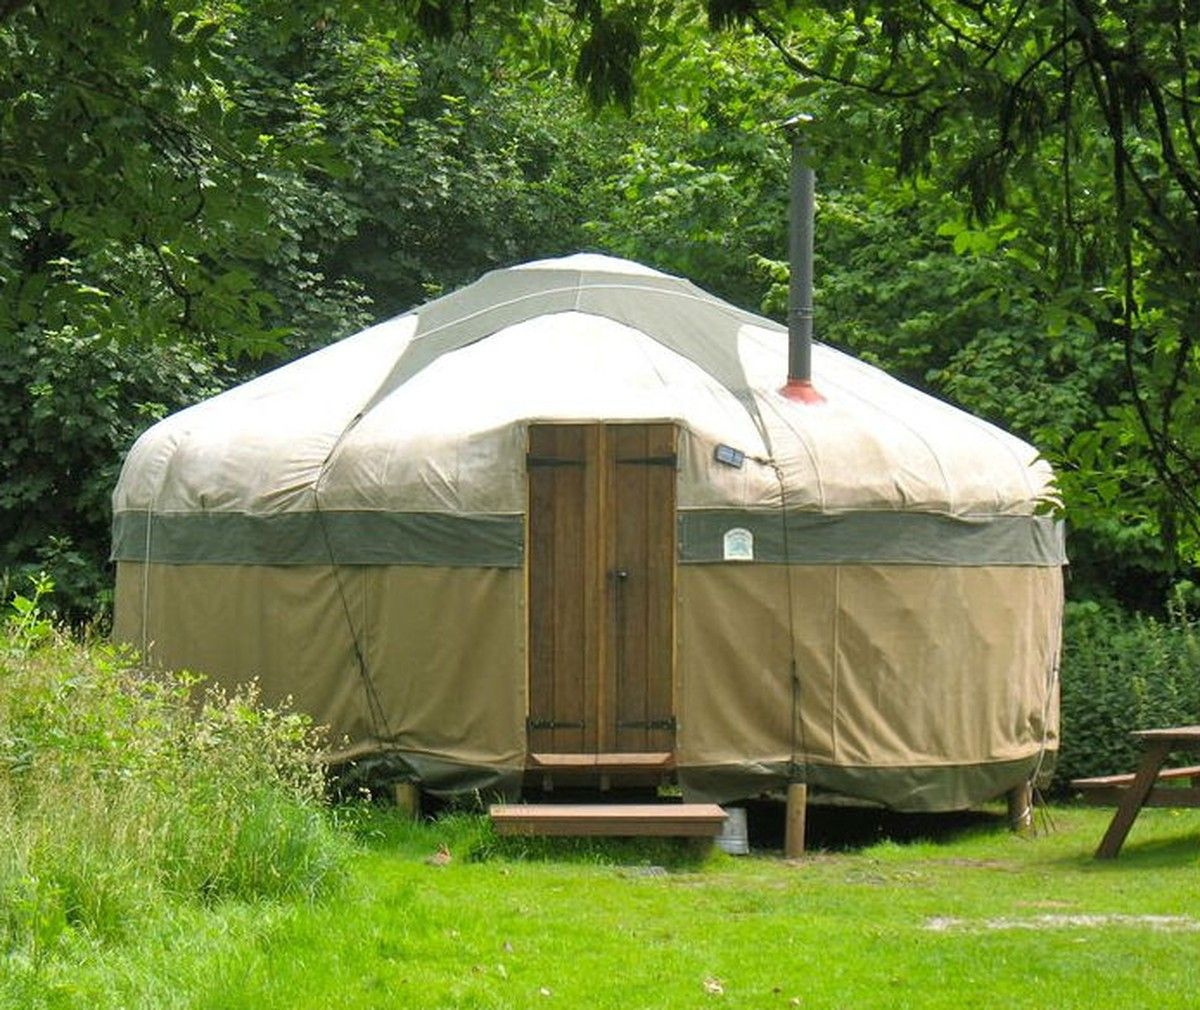 //for-sale.used-secondhand.co.uk/media/used/secondhand /images/33451/2x-18ft-yurts-with-liners-and-floors-cumbria/1200/yurt-for-cl&ing-for-sau2026 & http://for-sale.used-secondhand.co.uk/media/used/secondhand/images ...